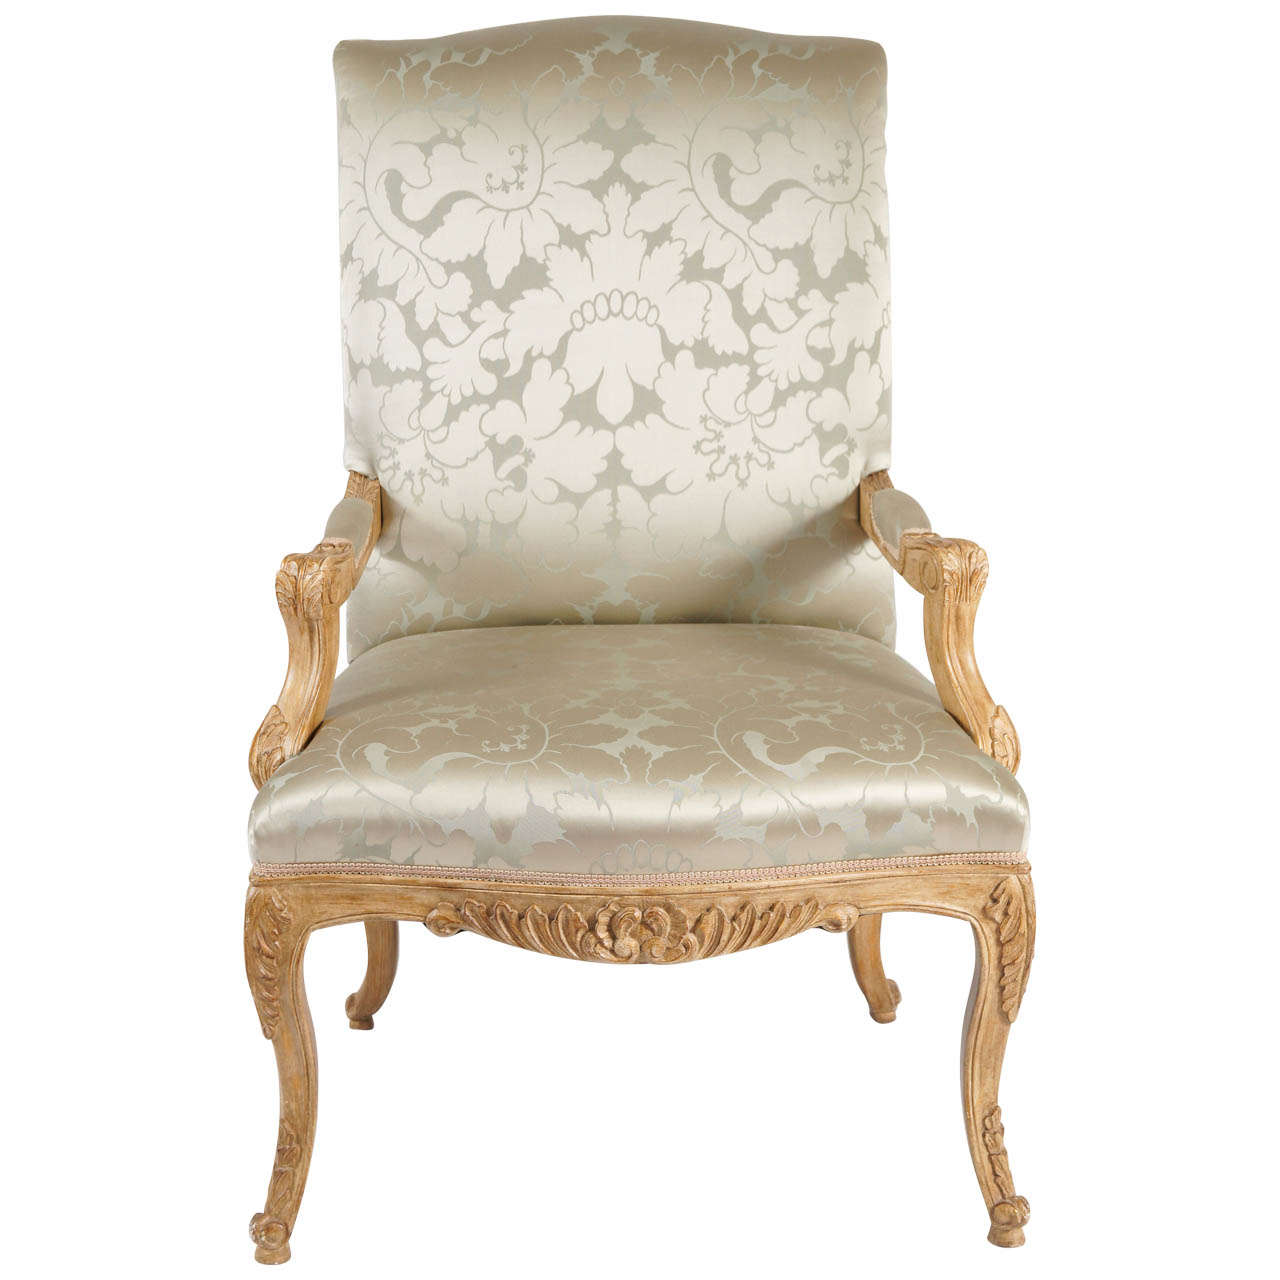 Damask Chair Louis Xiv Style Chair Silk Damask Upholstery